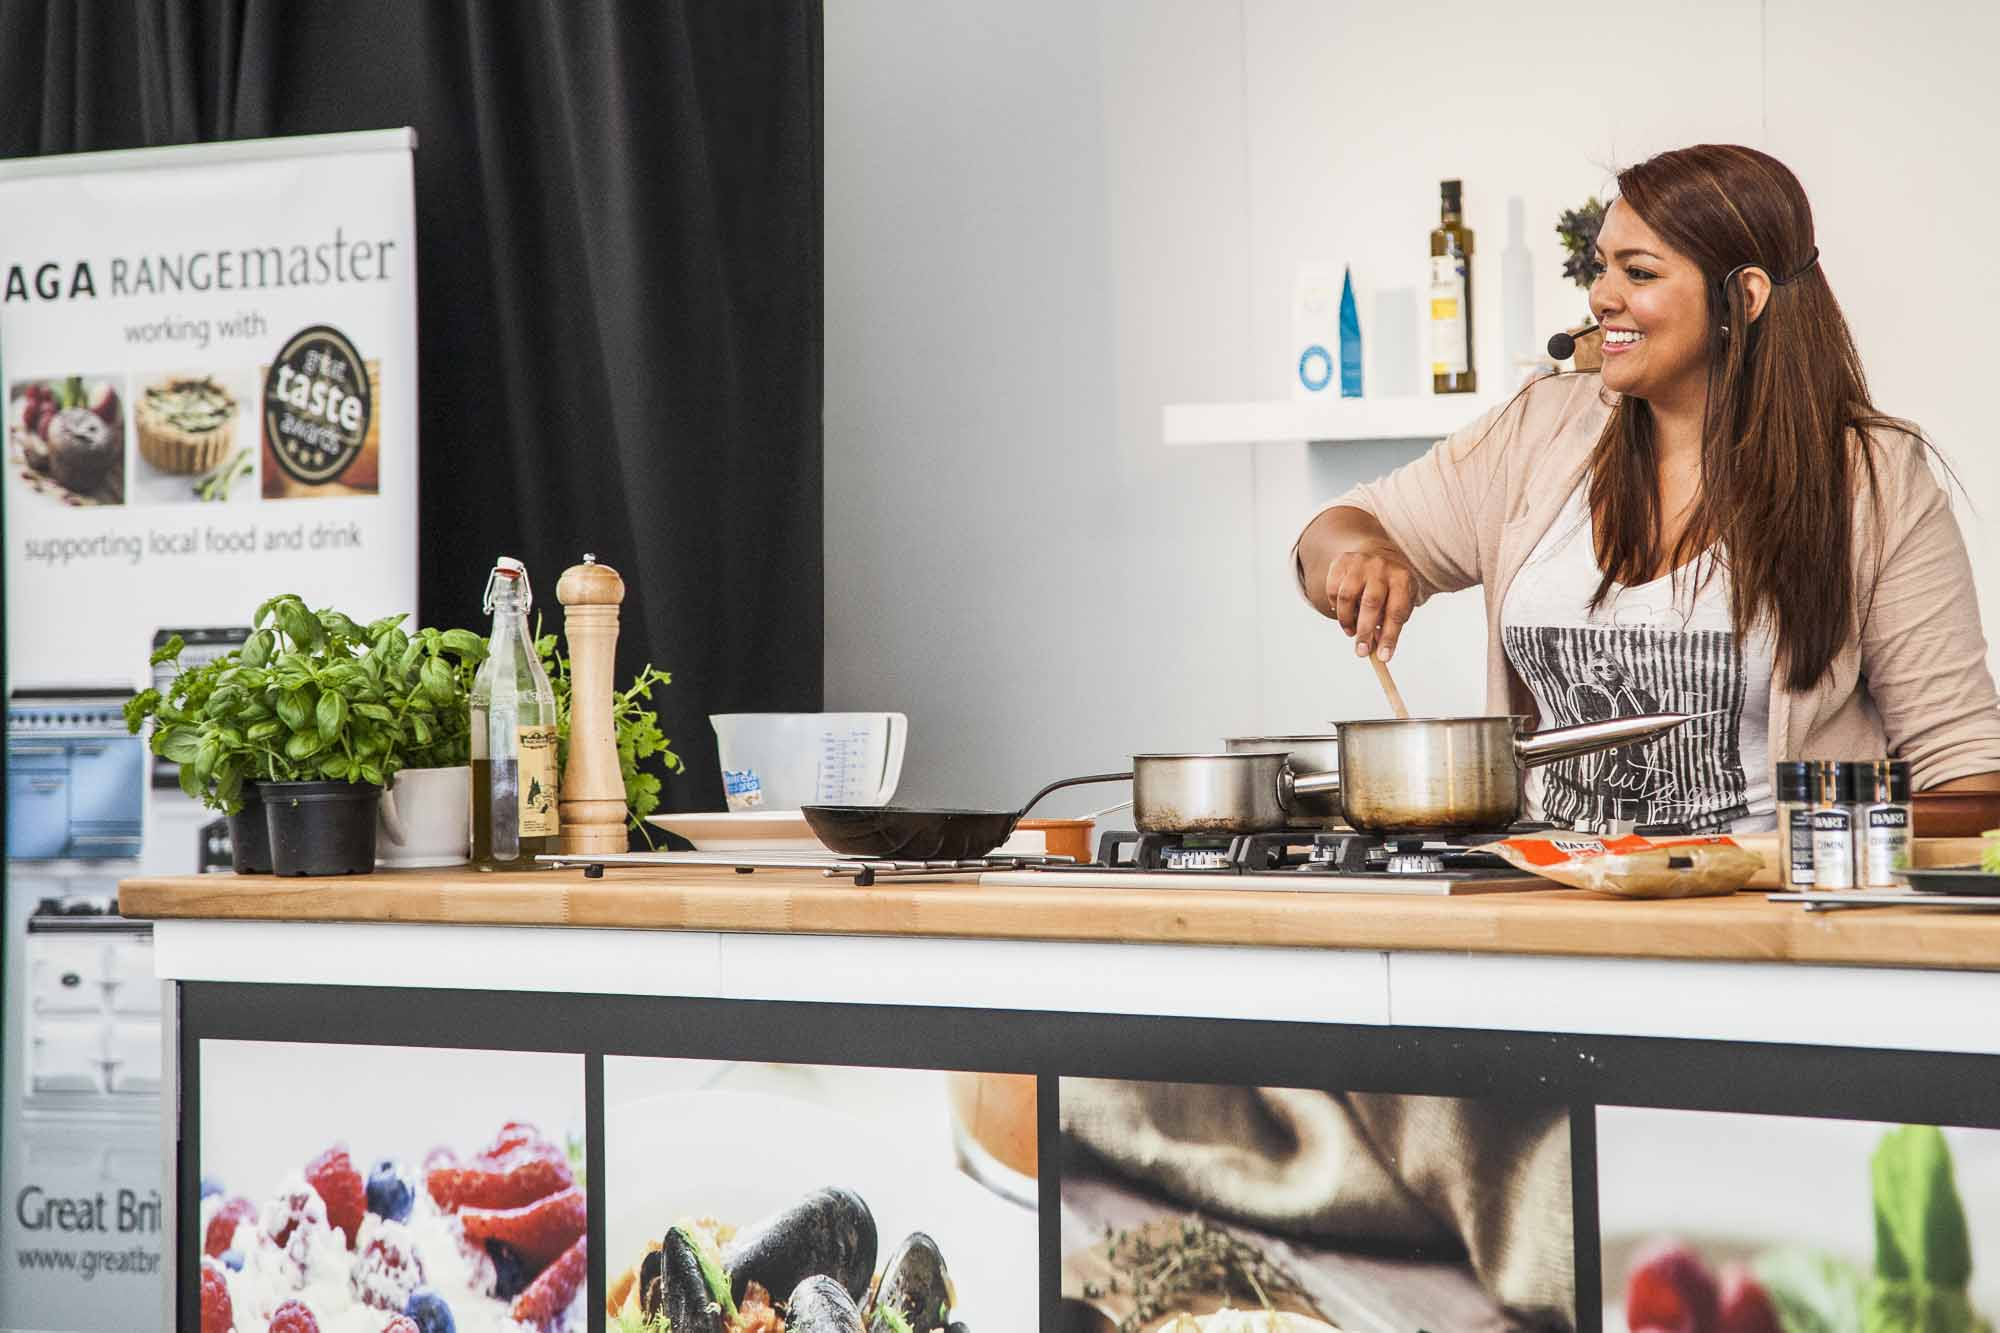 Shelina Permalloo, MasterChef 2012 champ, hosted the Chefs' Theatres in London